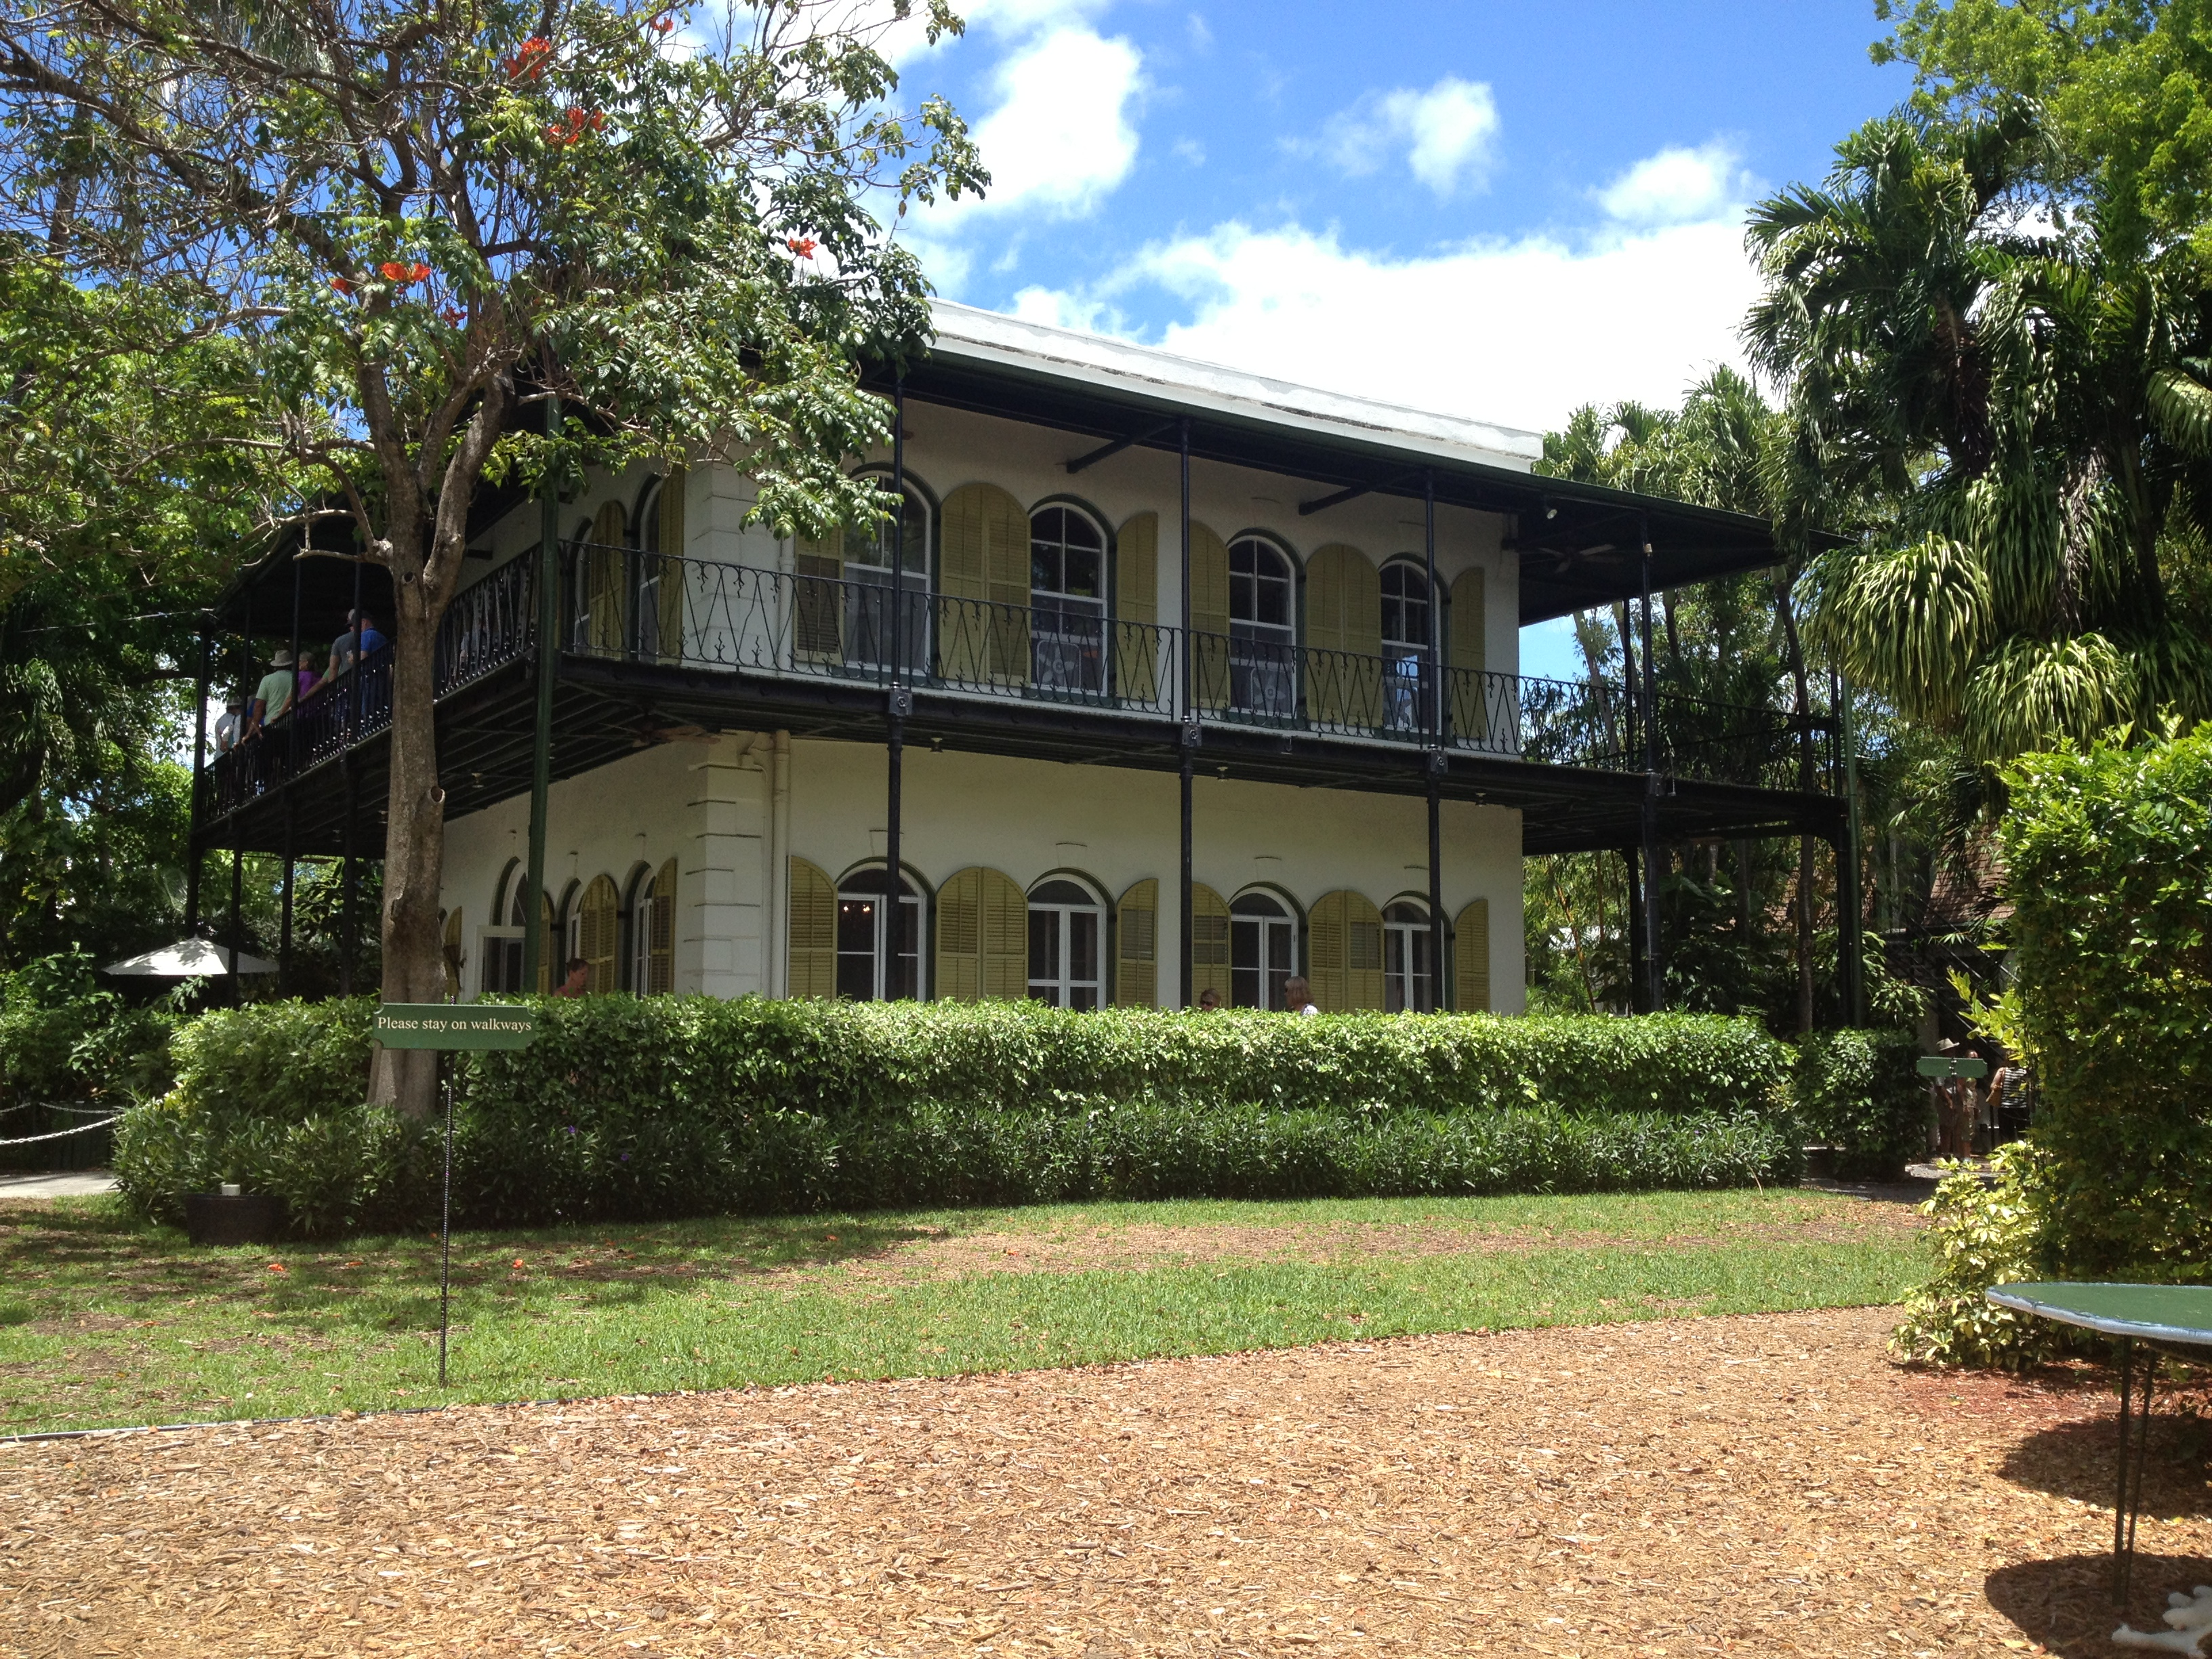 Ernest Hemingway Home And Museum The Key Wester A Key